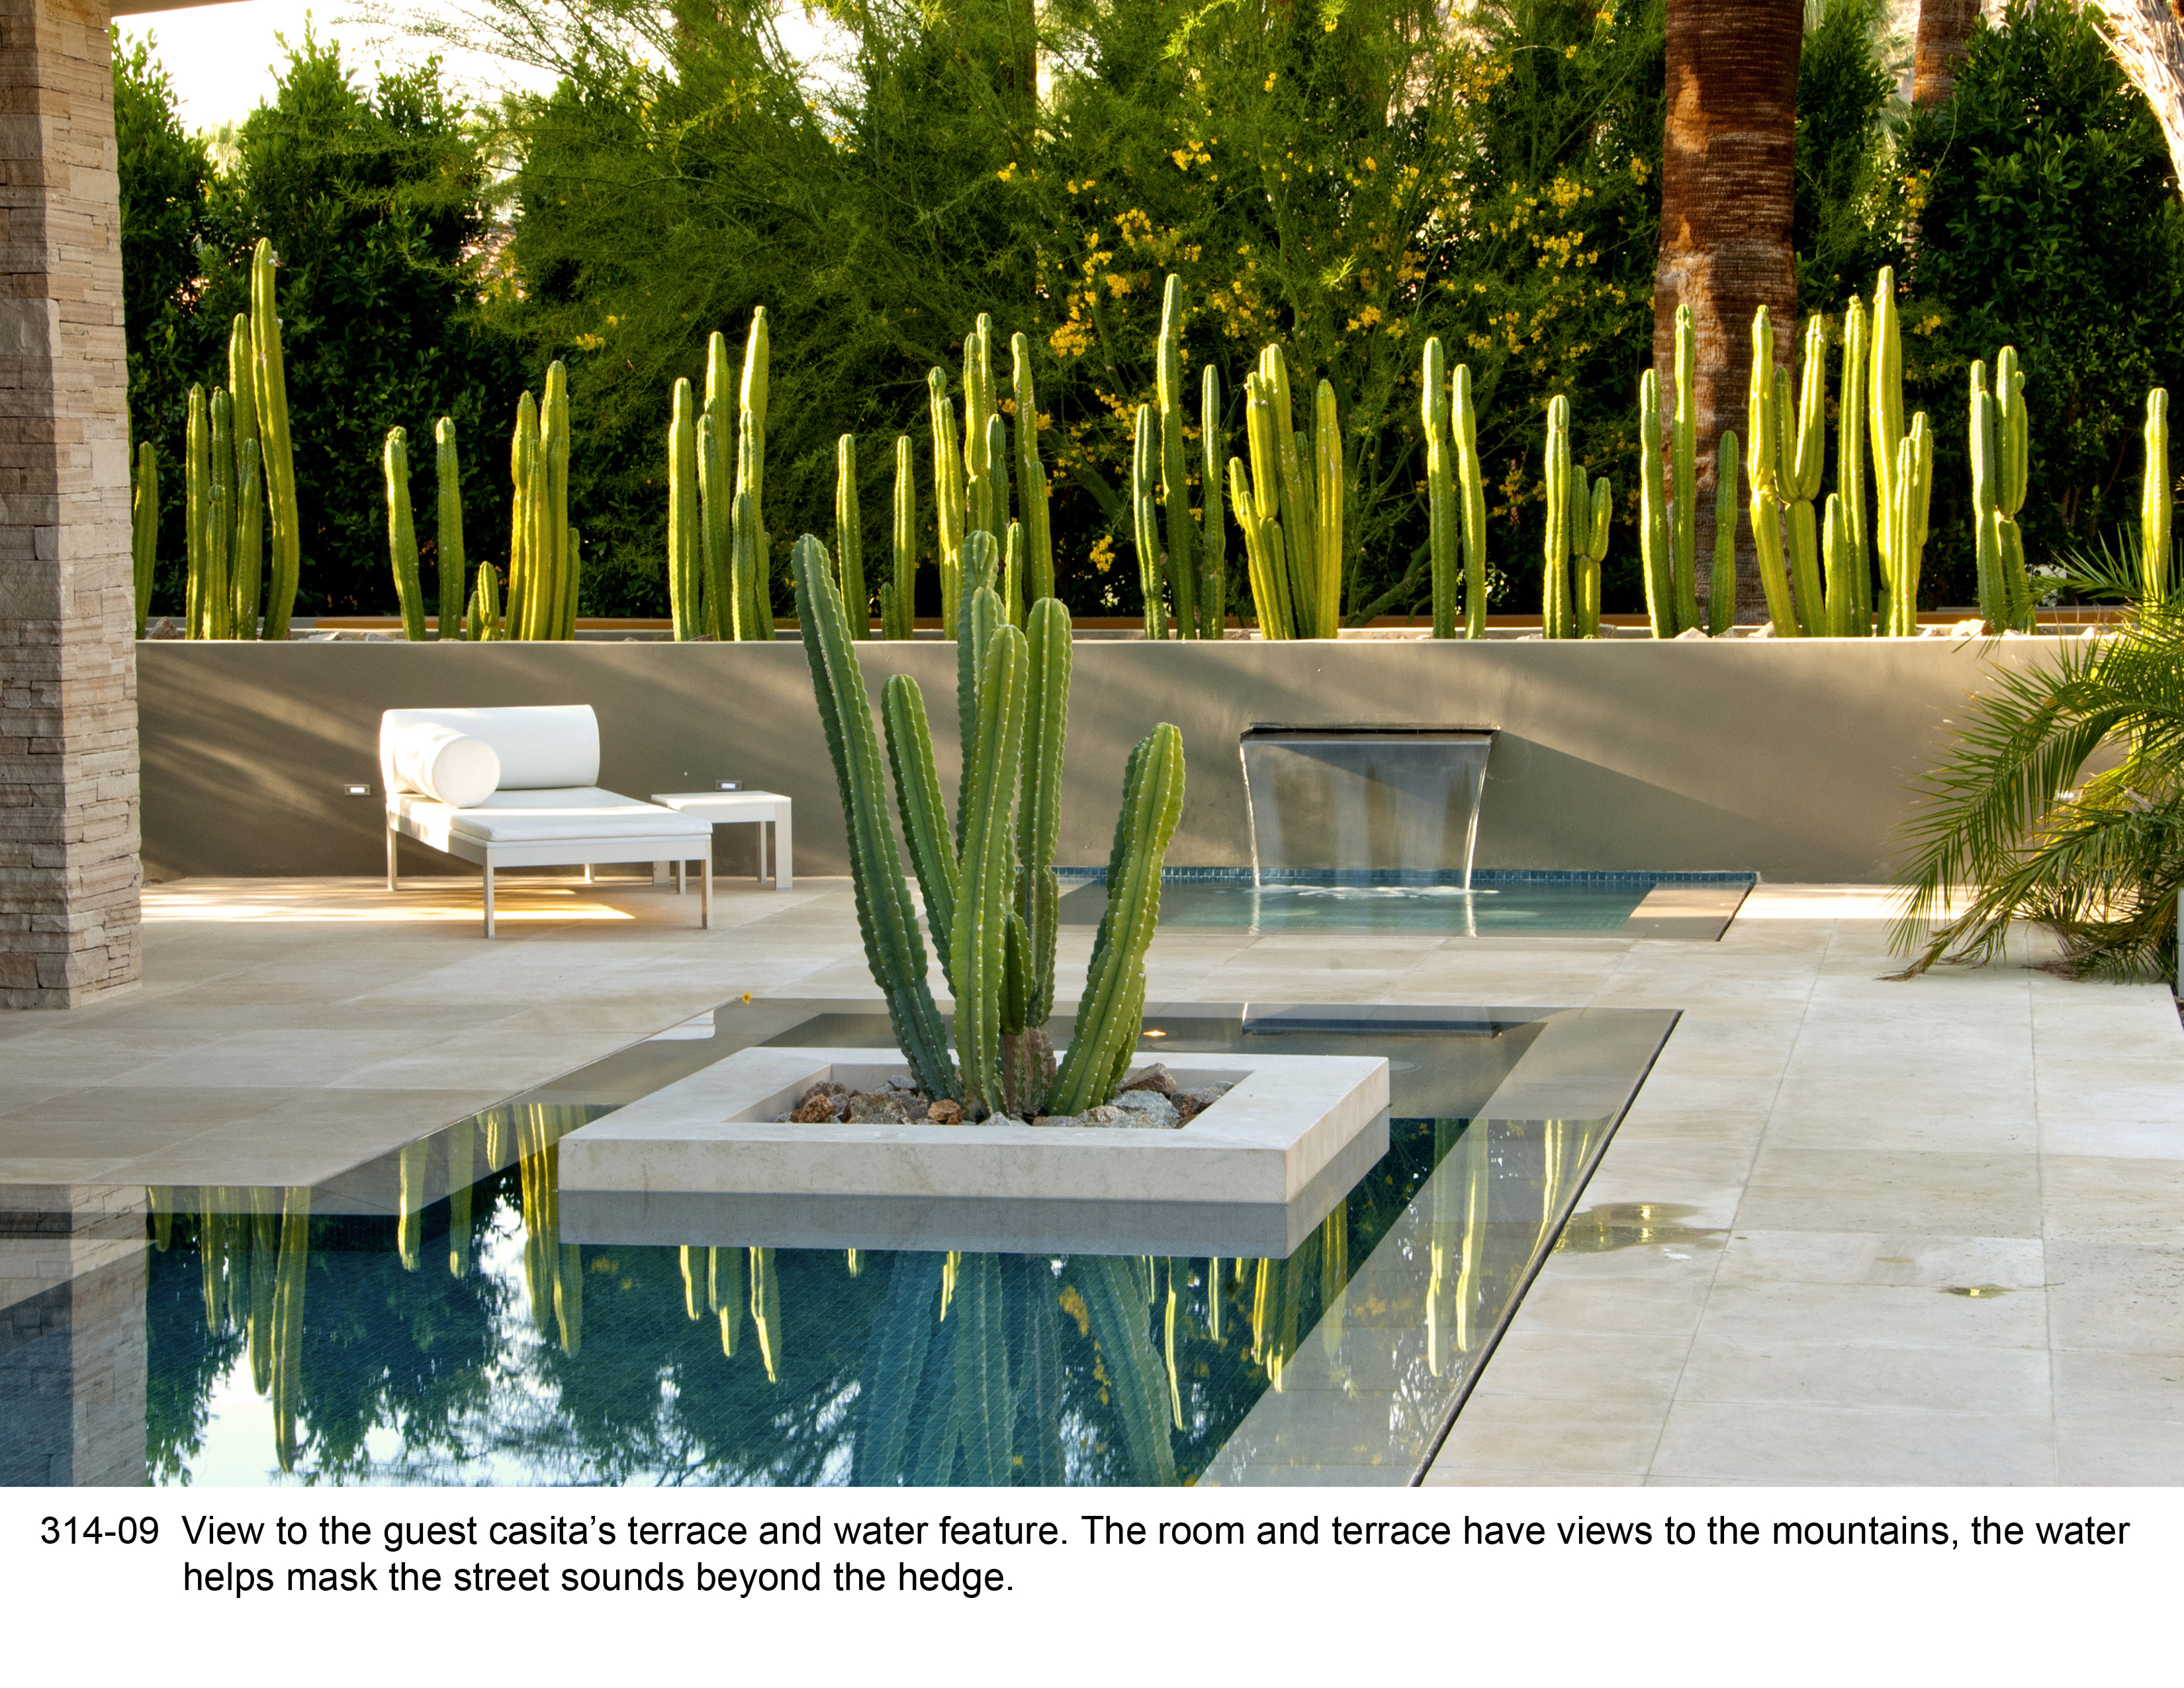 Asla 2012 professional awards new century garden a for Mid century modern water feature